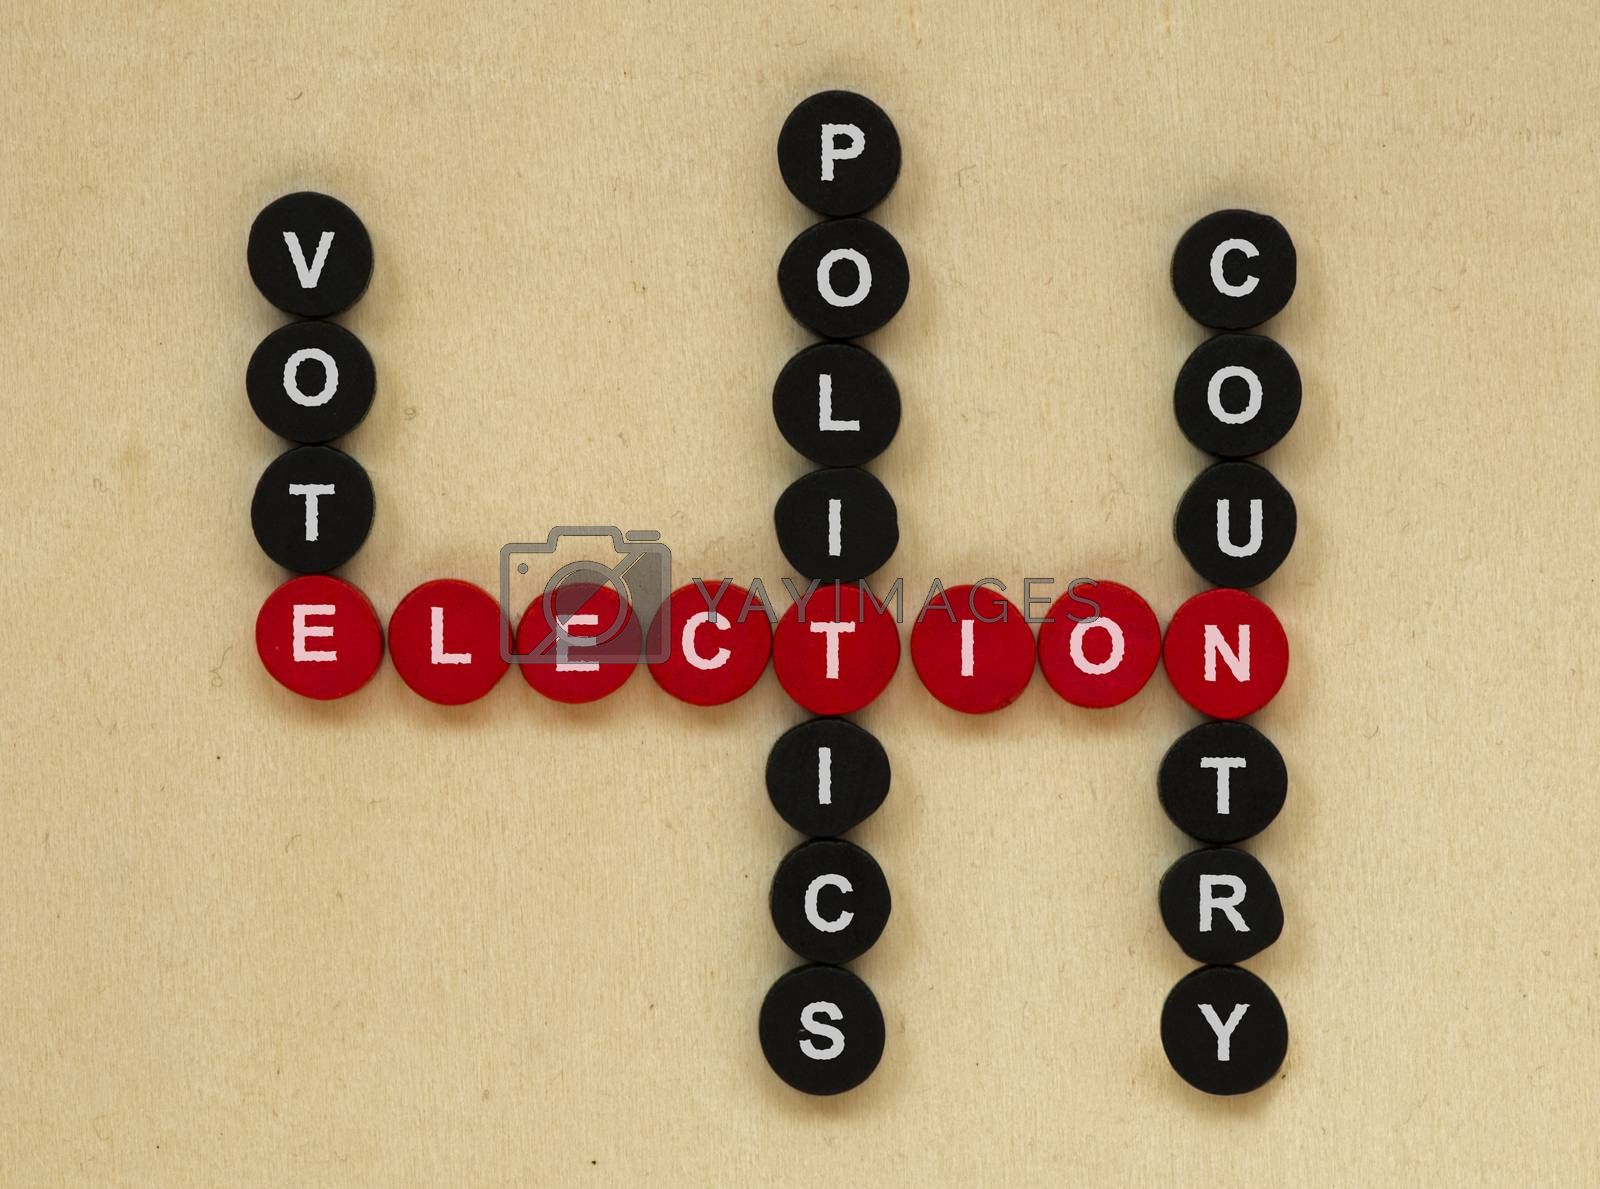 Elections conception texts in crossword.